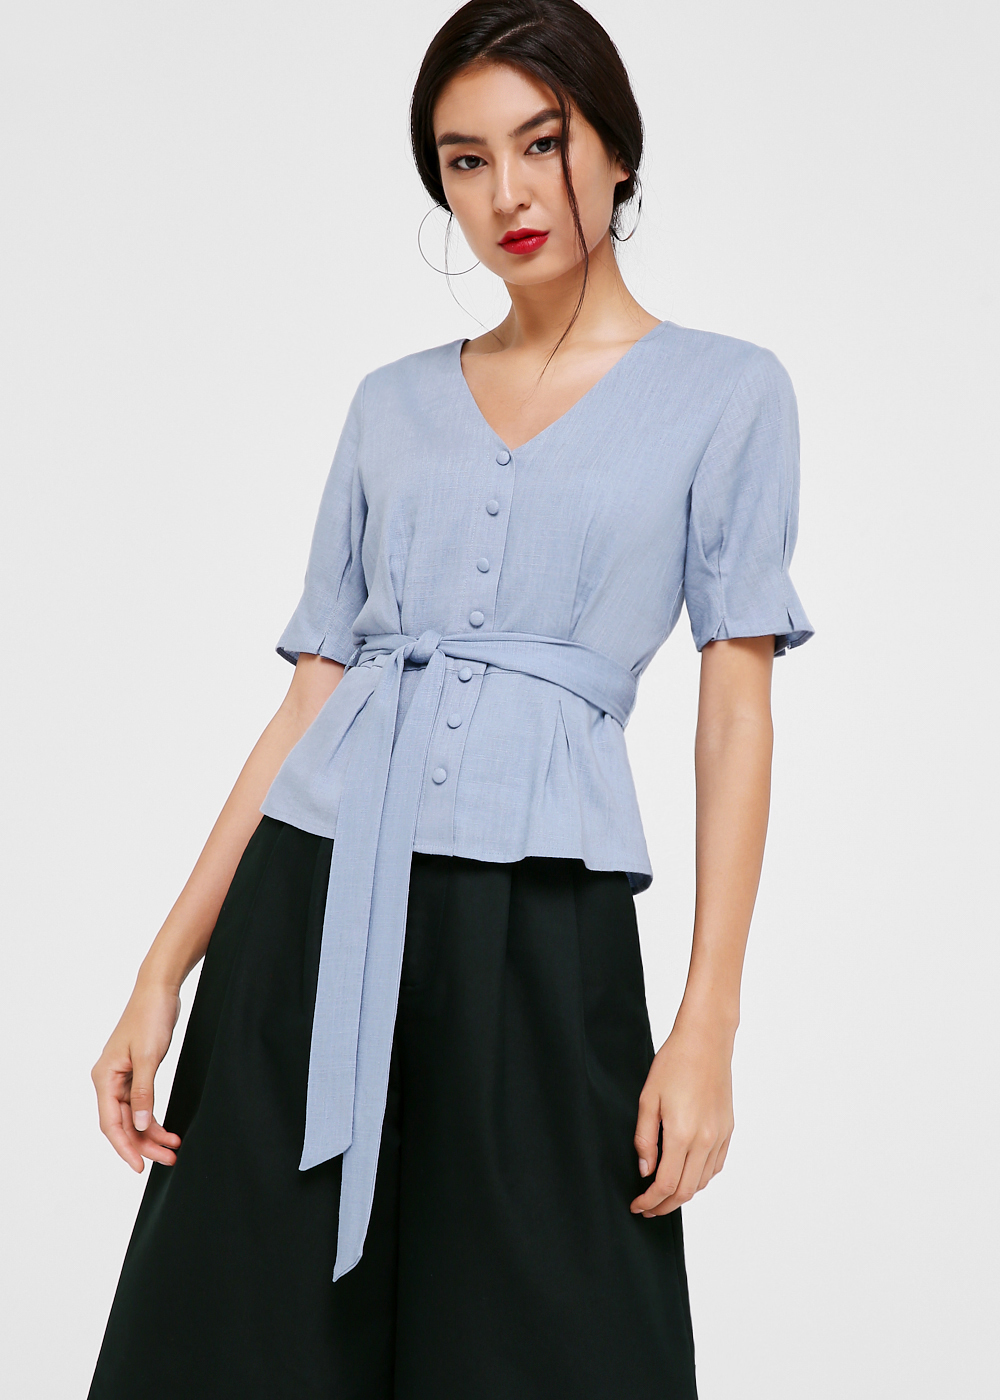 Eloise Puff Sleeve Button Down Blouse